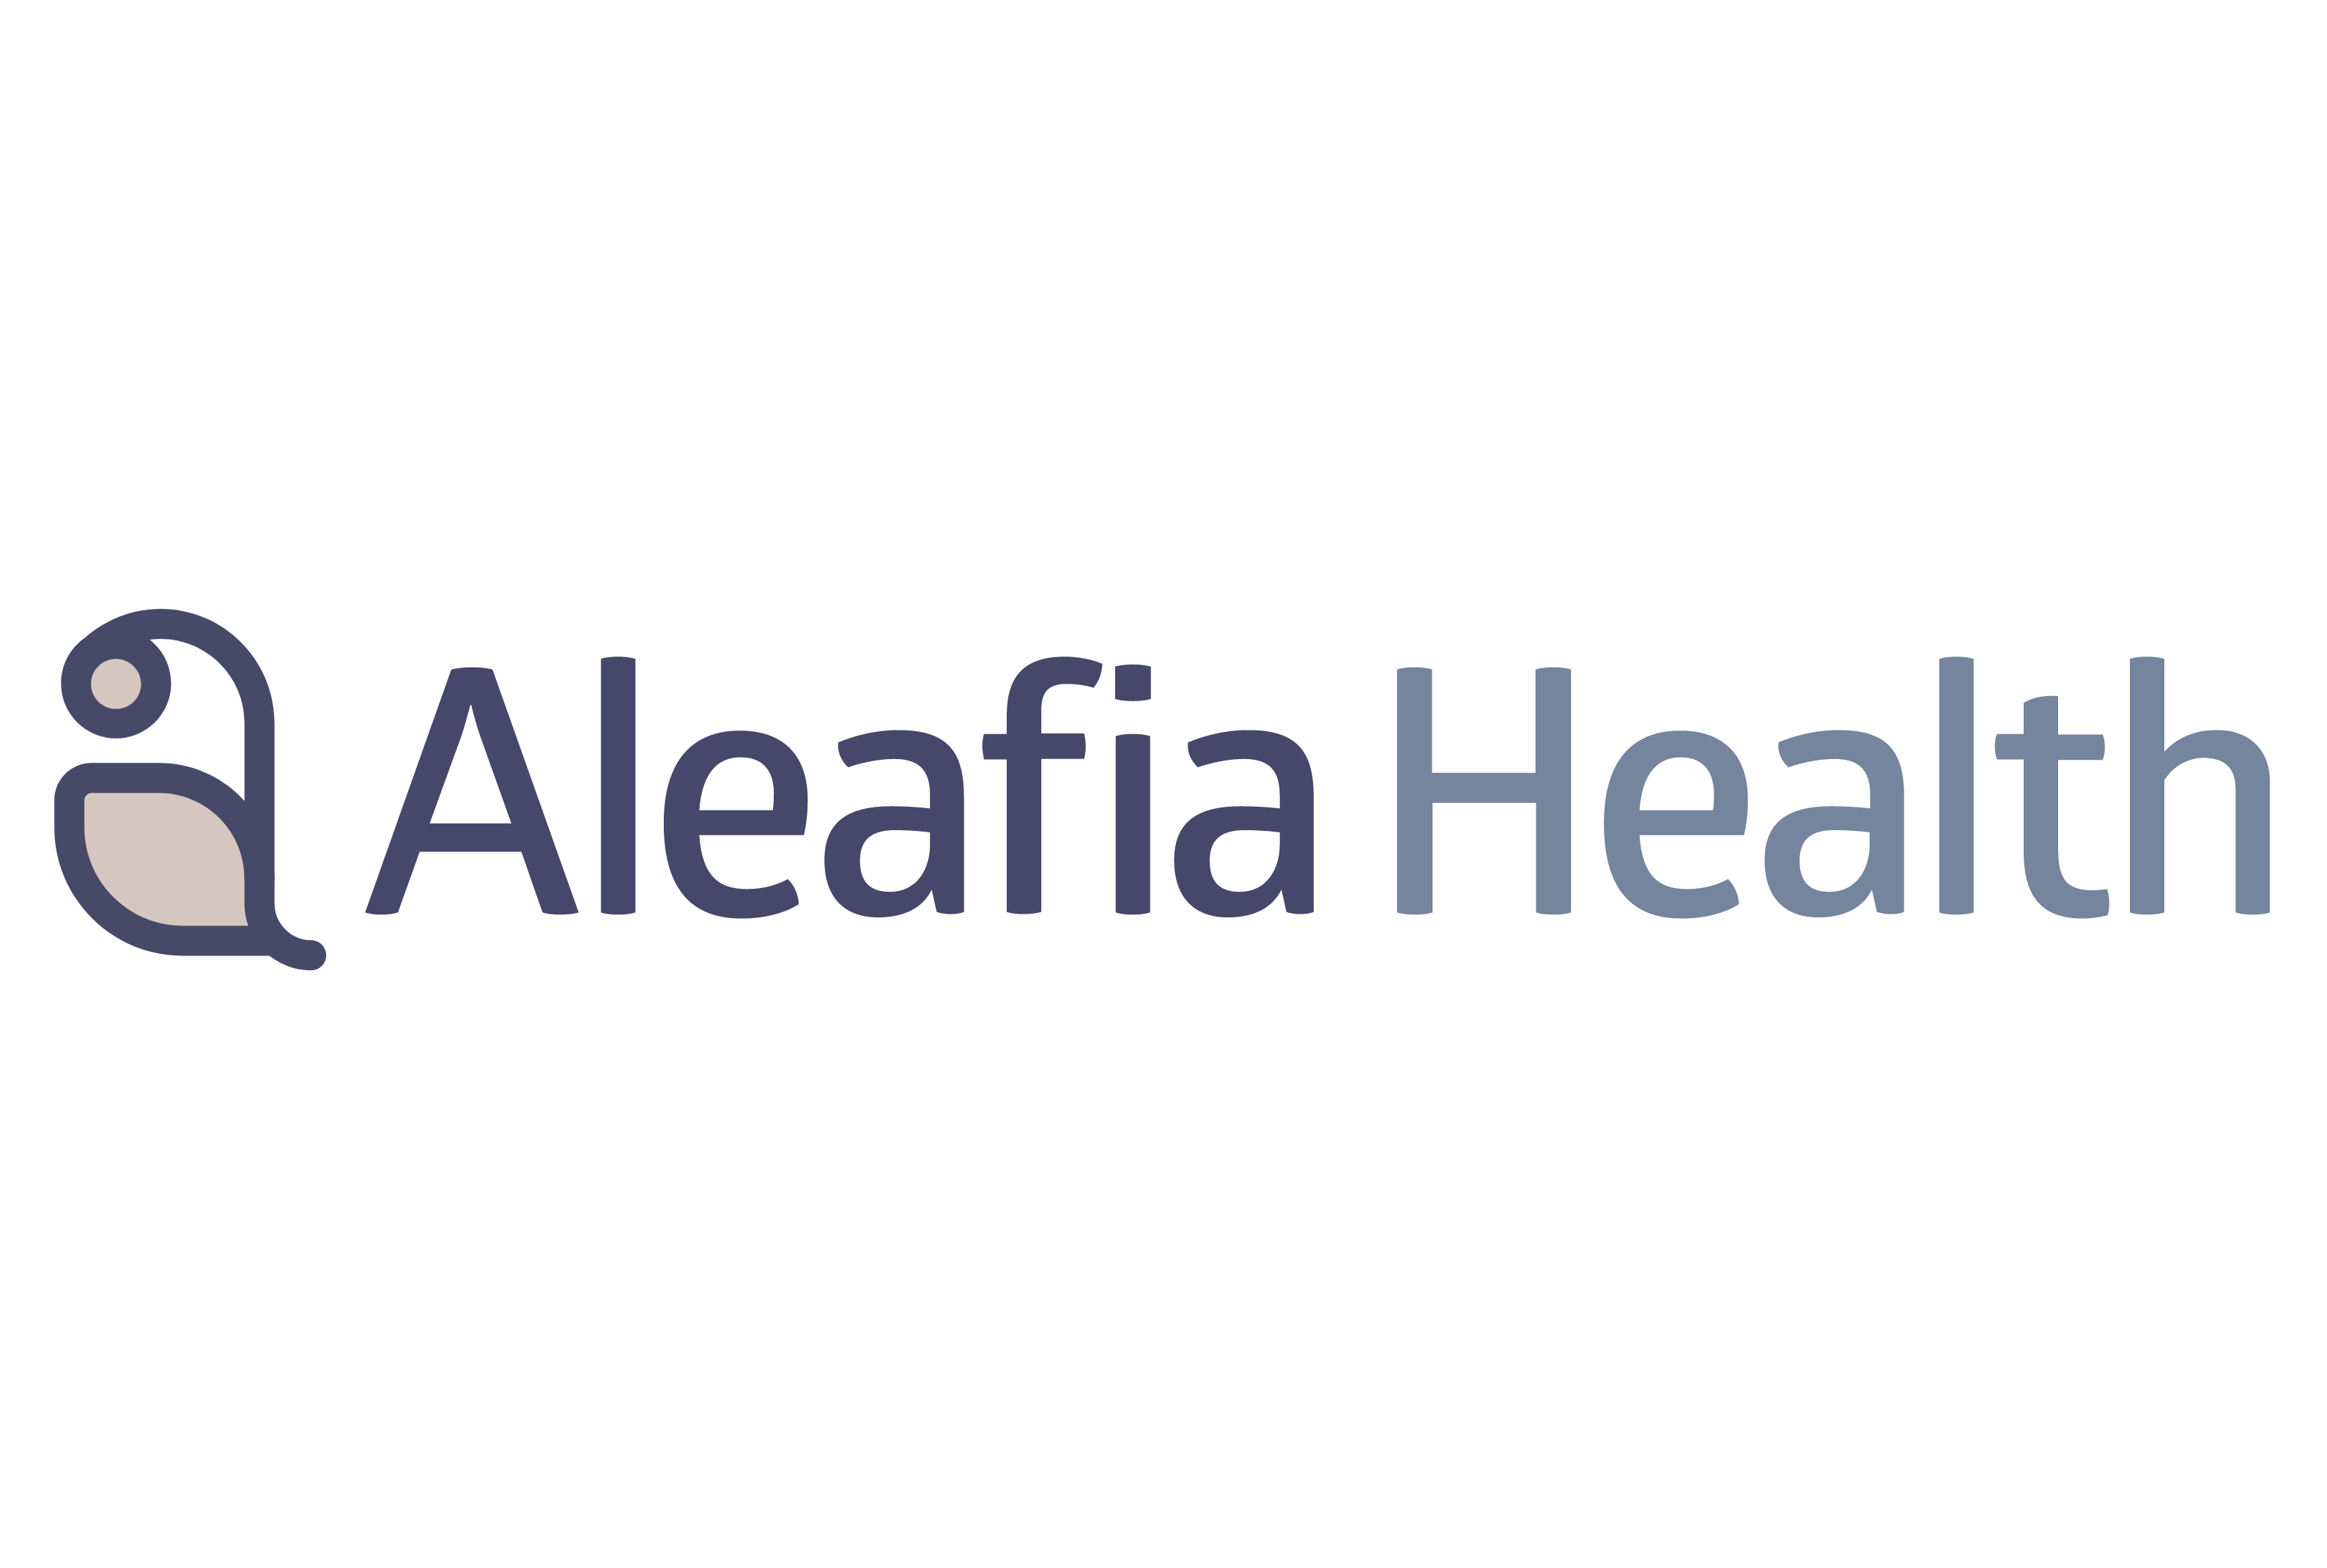 Aleafia Health Announces Closing of $22.7 Million Bought Deal Offering